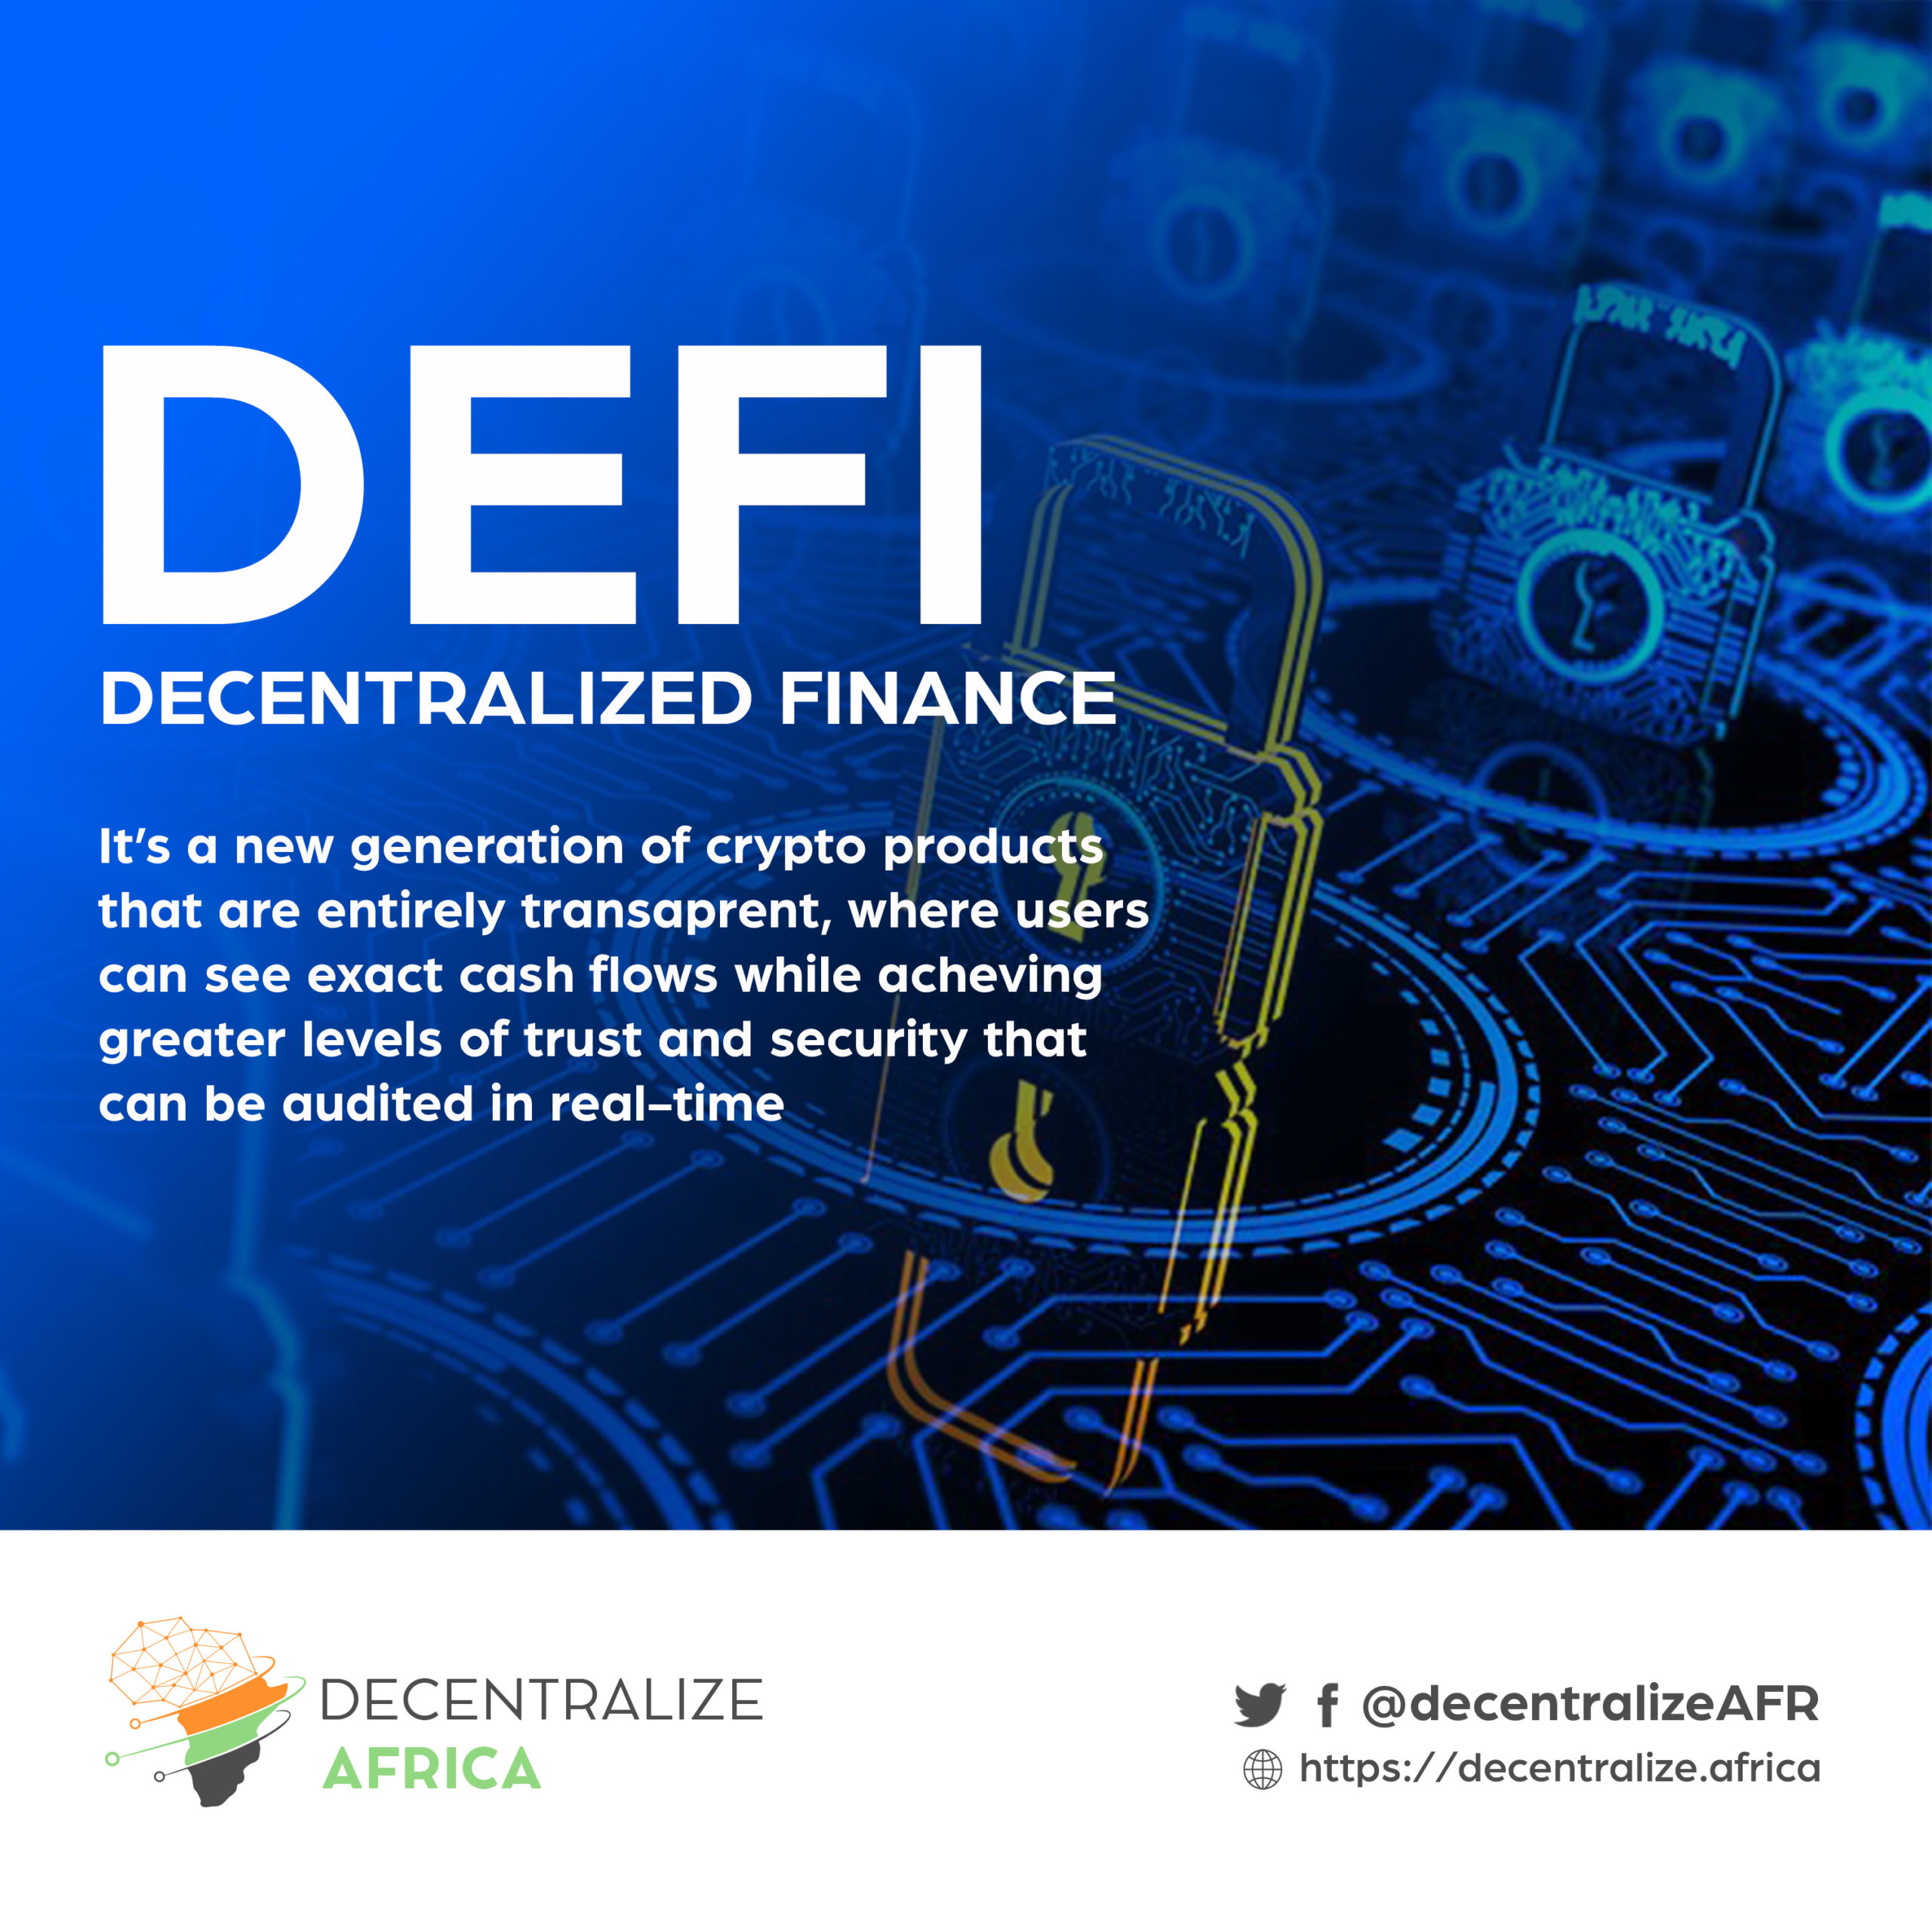 DeFi – Decentralized Finance